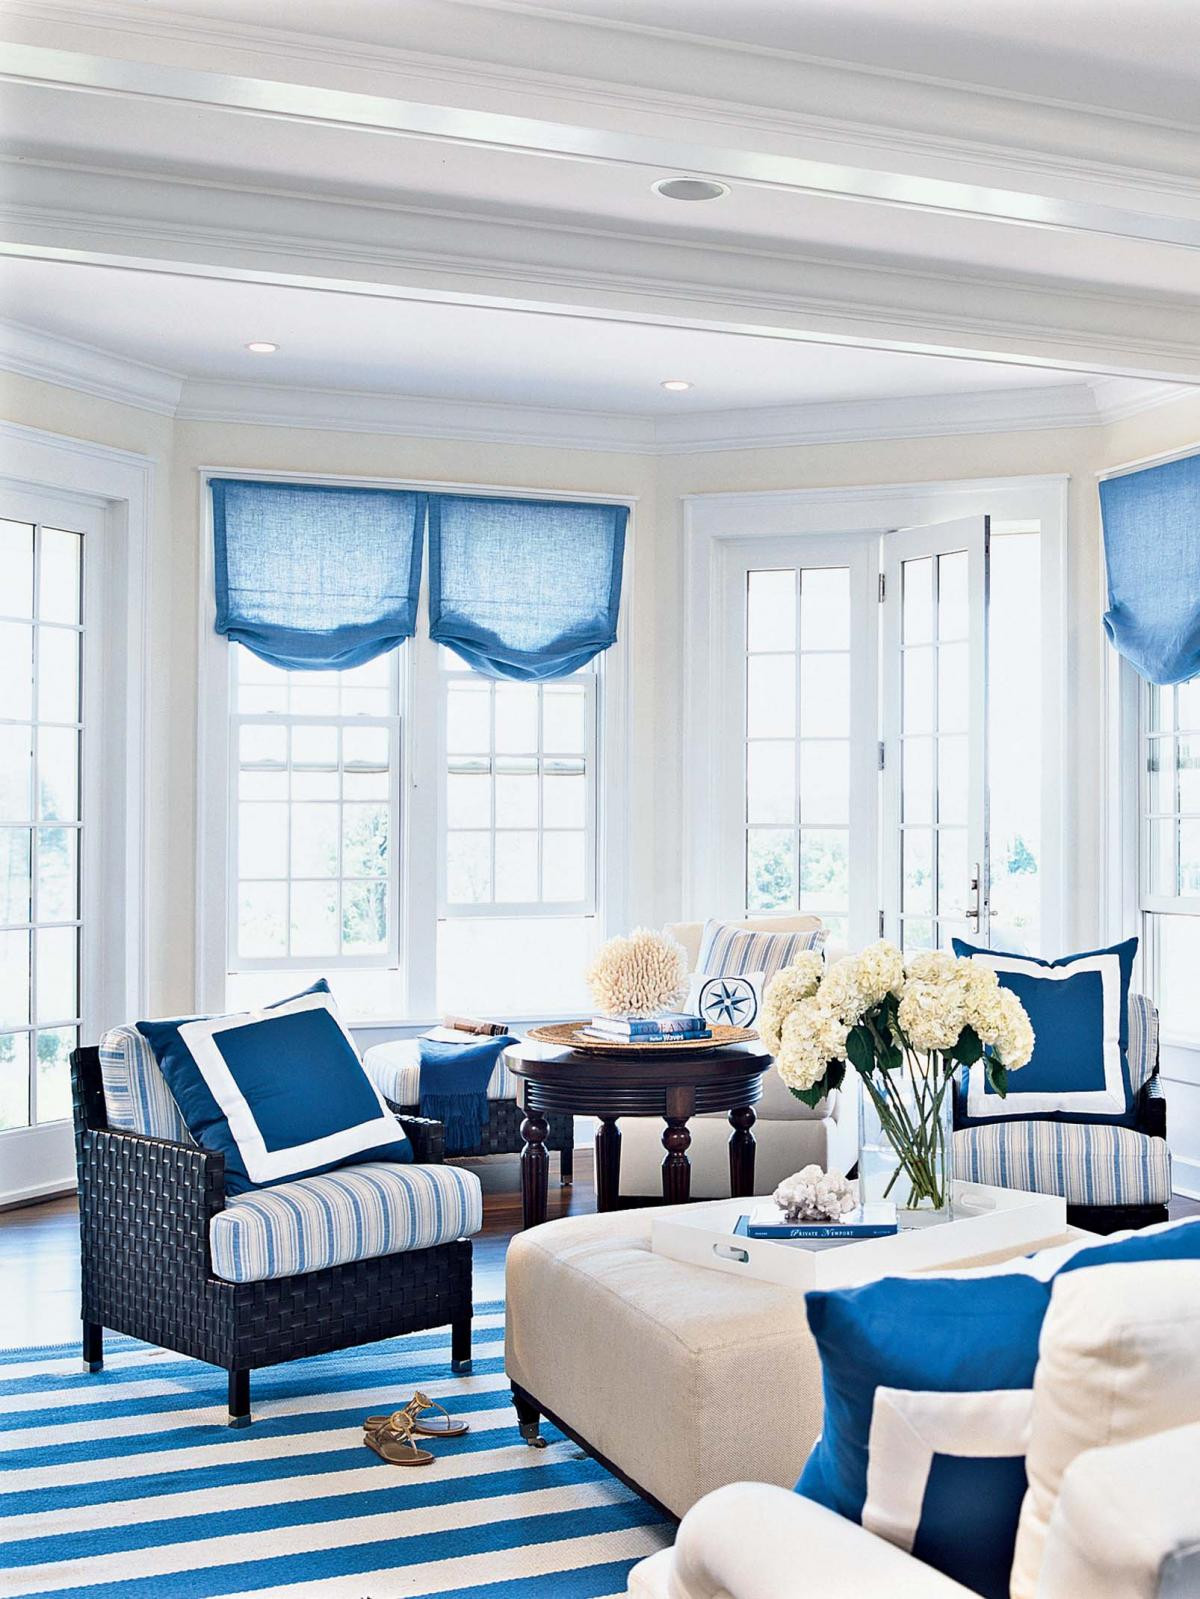 Best ideas about Blue Living Room . Save or Pin Enchanting Blue Living Room Inspirations Now.